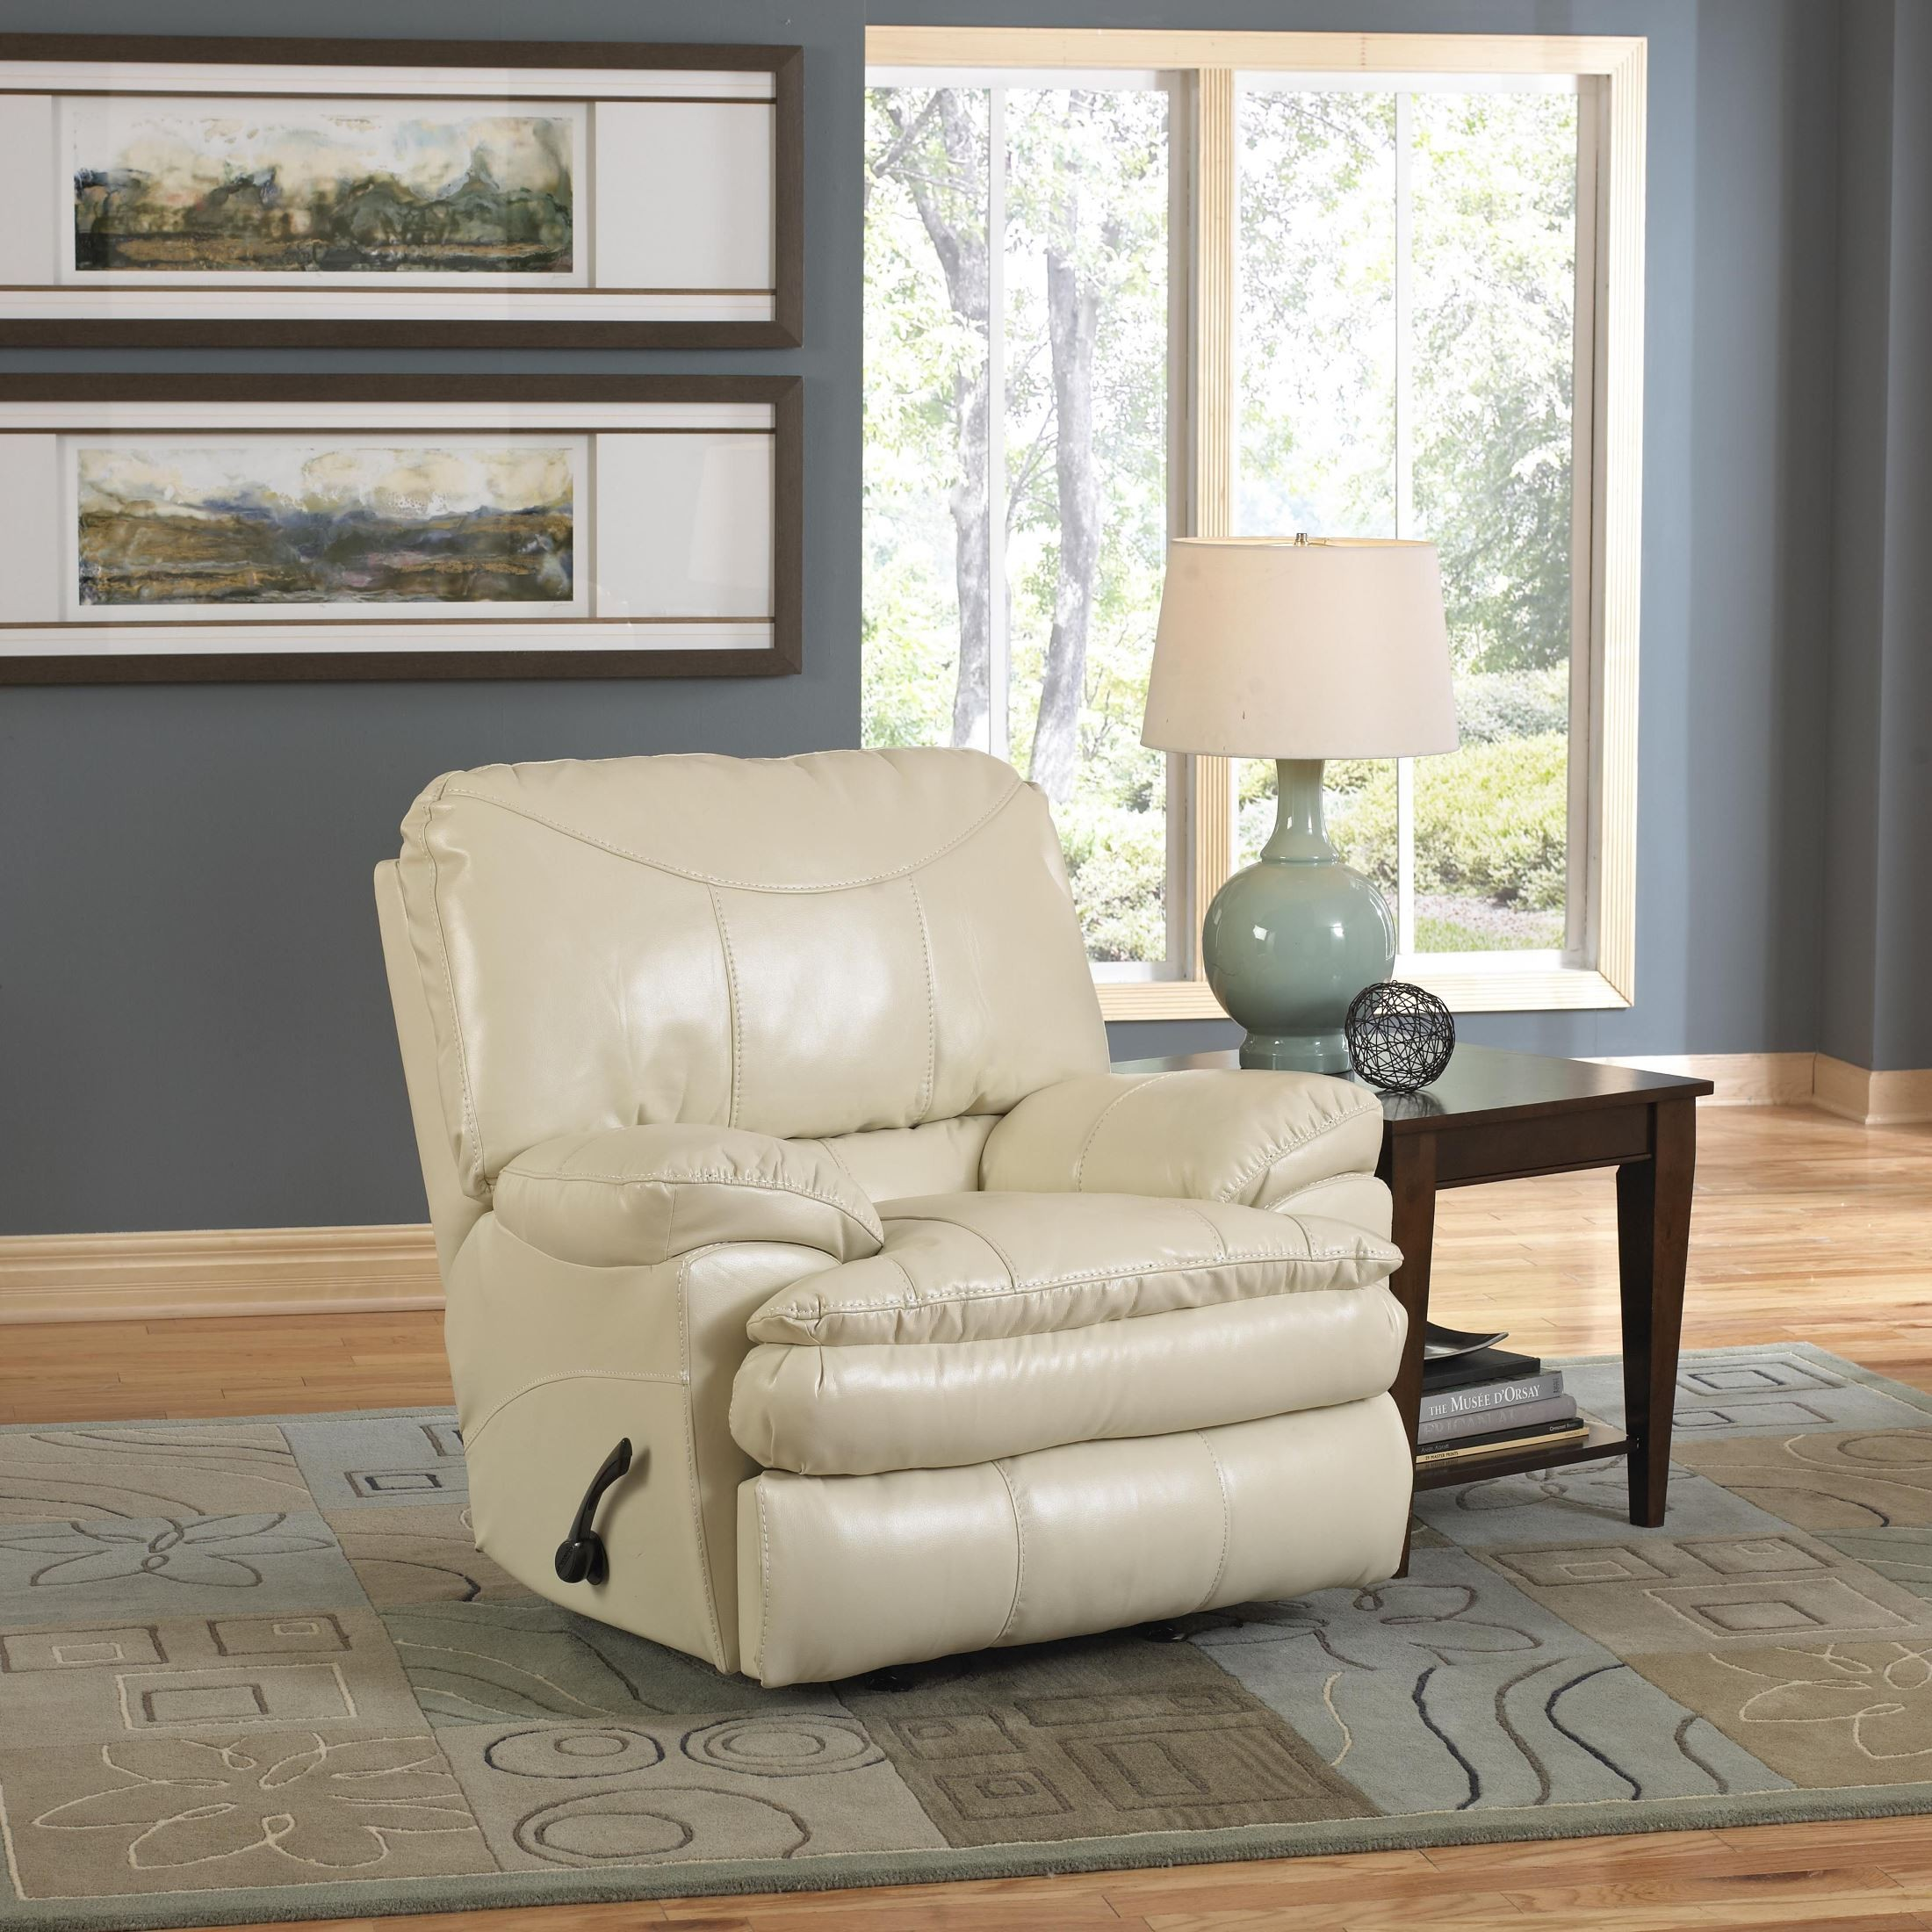 Perez Ice Recliner From Catnapper 41402100000000000 Coleman Furniture